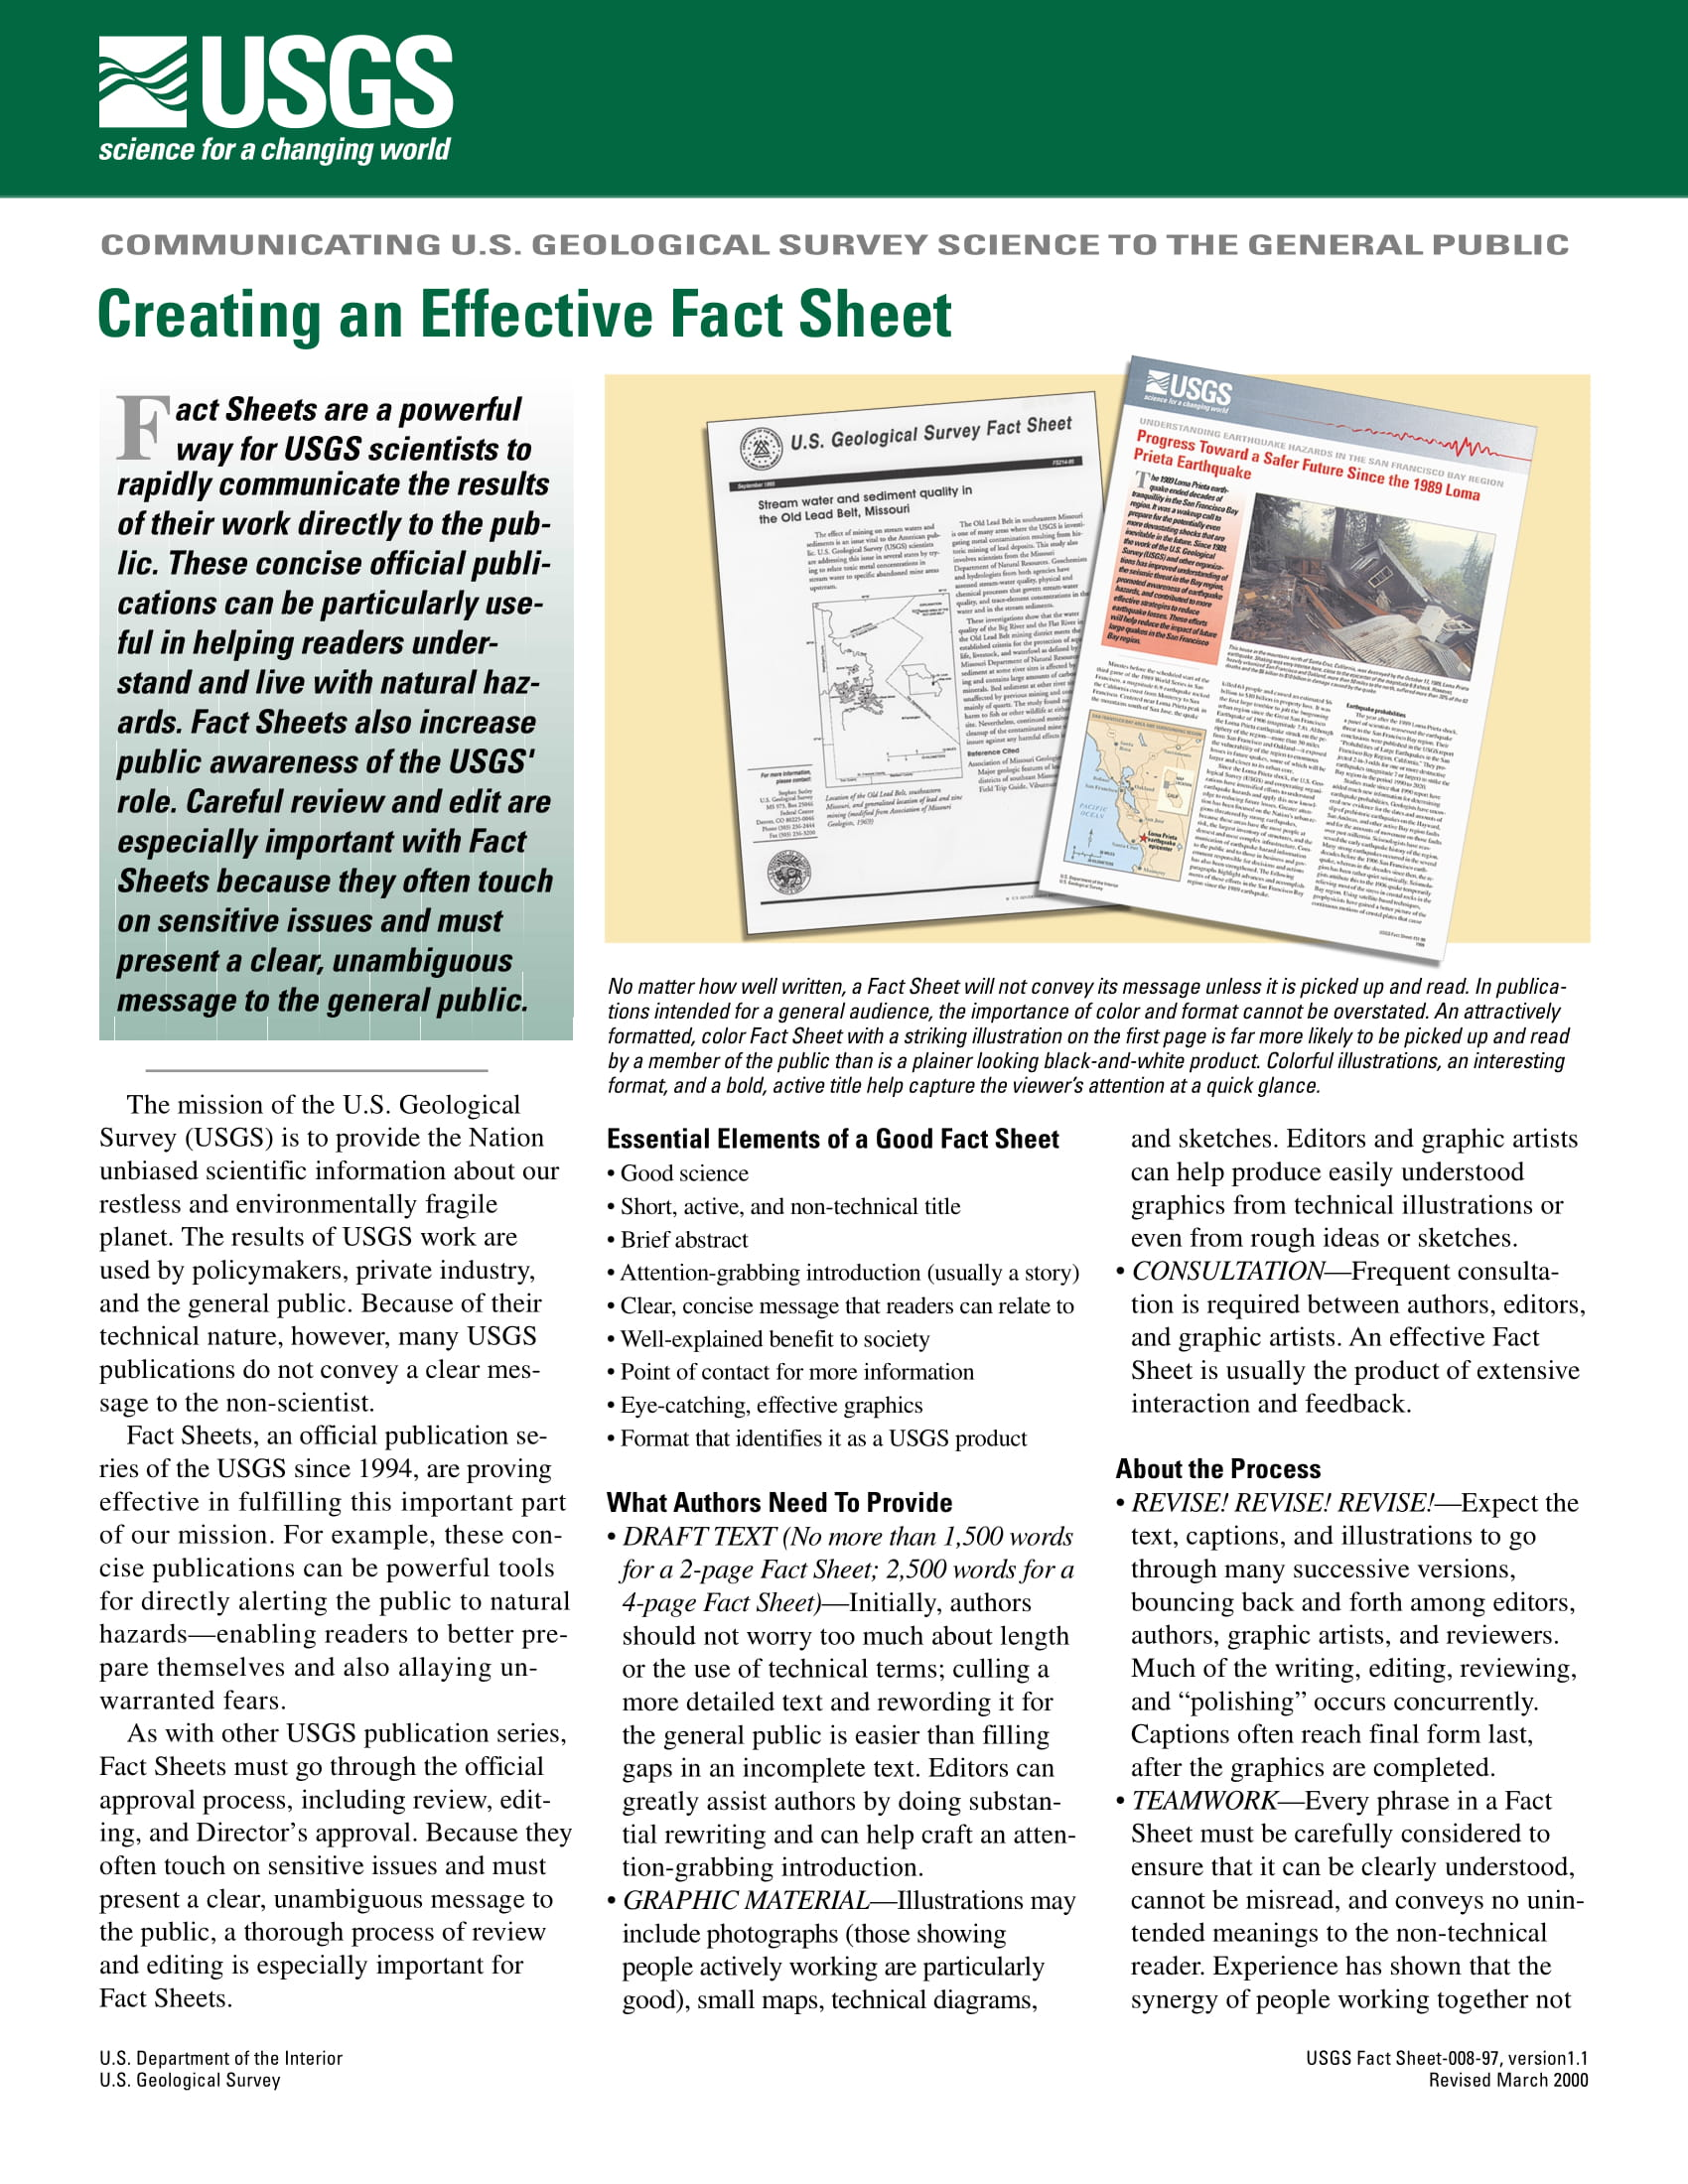 16 Fact Sheet Templates And Examples